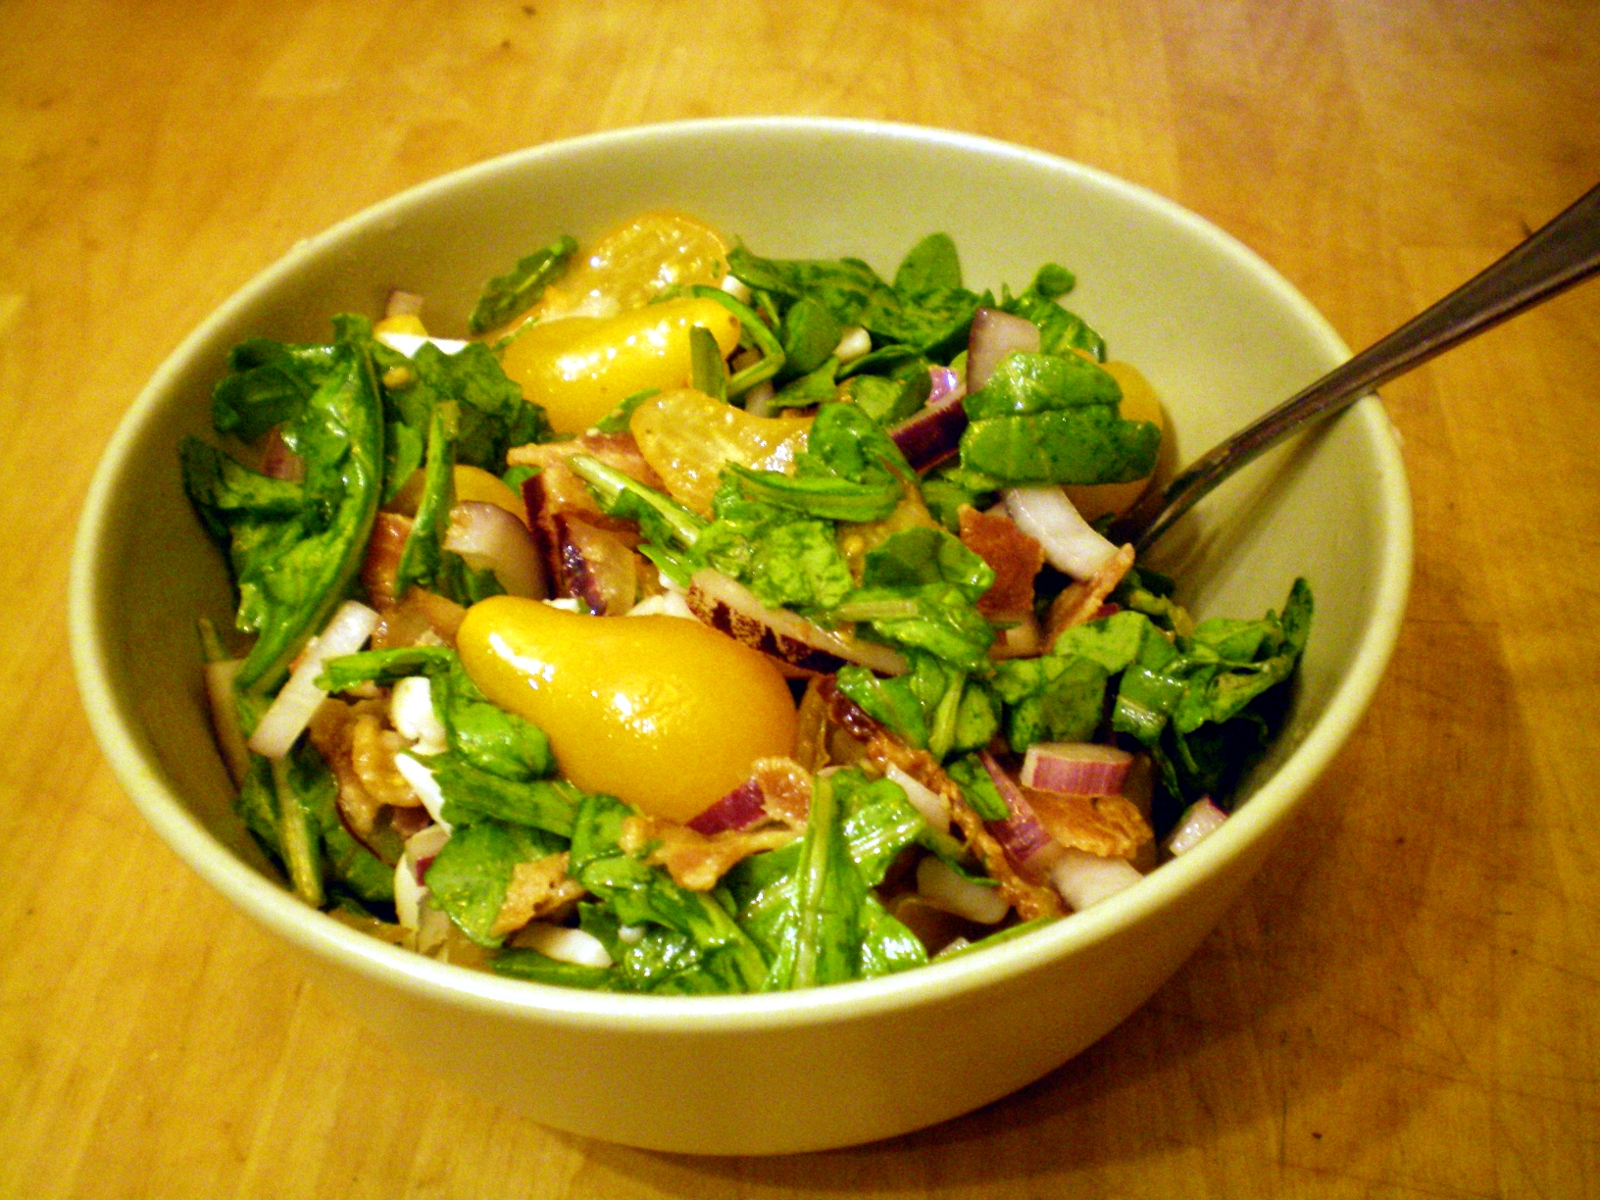 Rockin' Rocket Salad